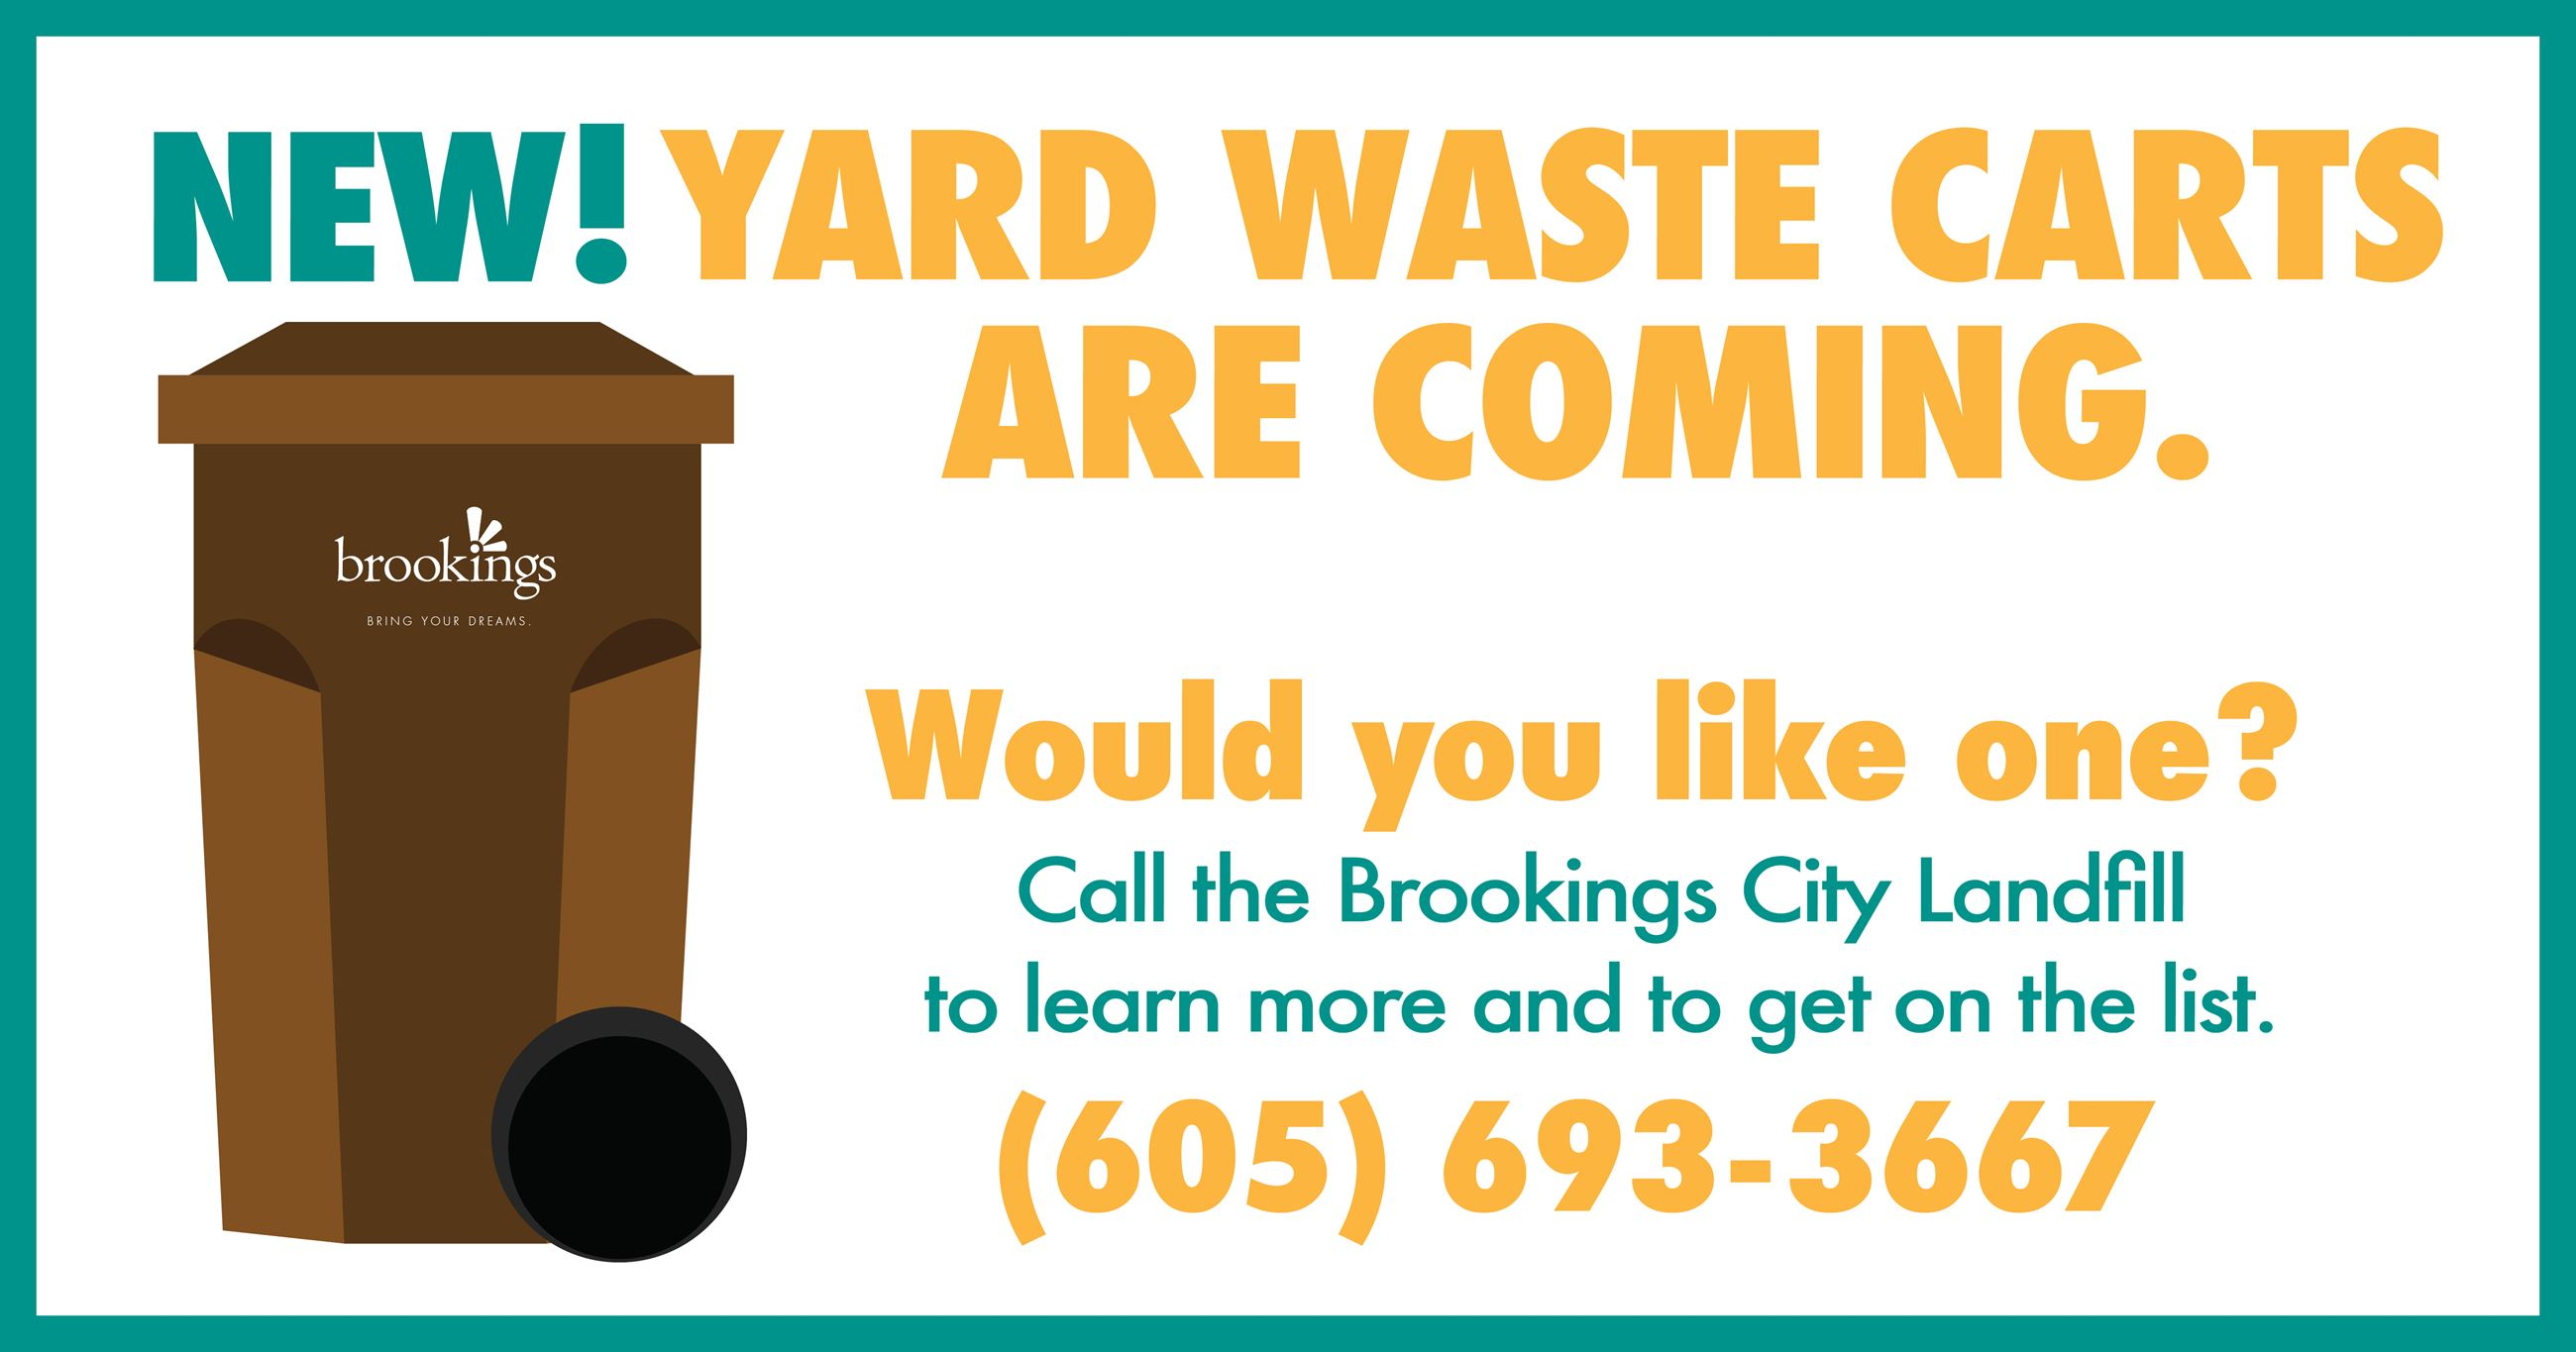 Coming Soon Yard Waste Carts Graphic